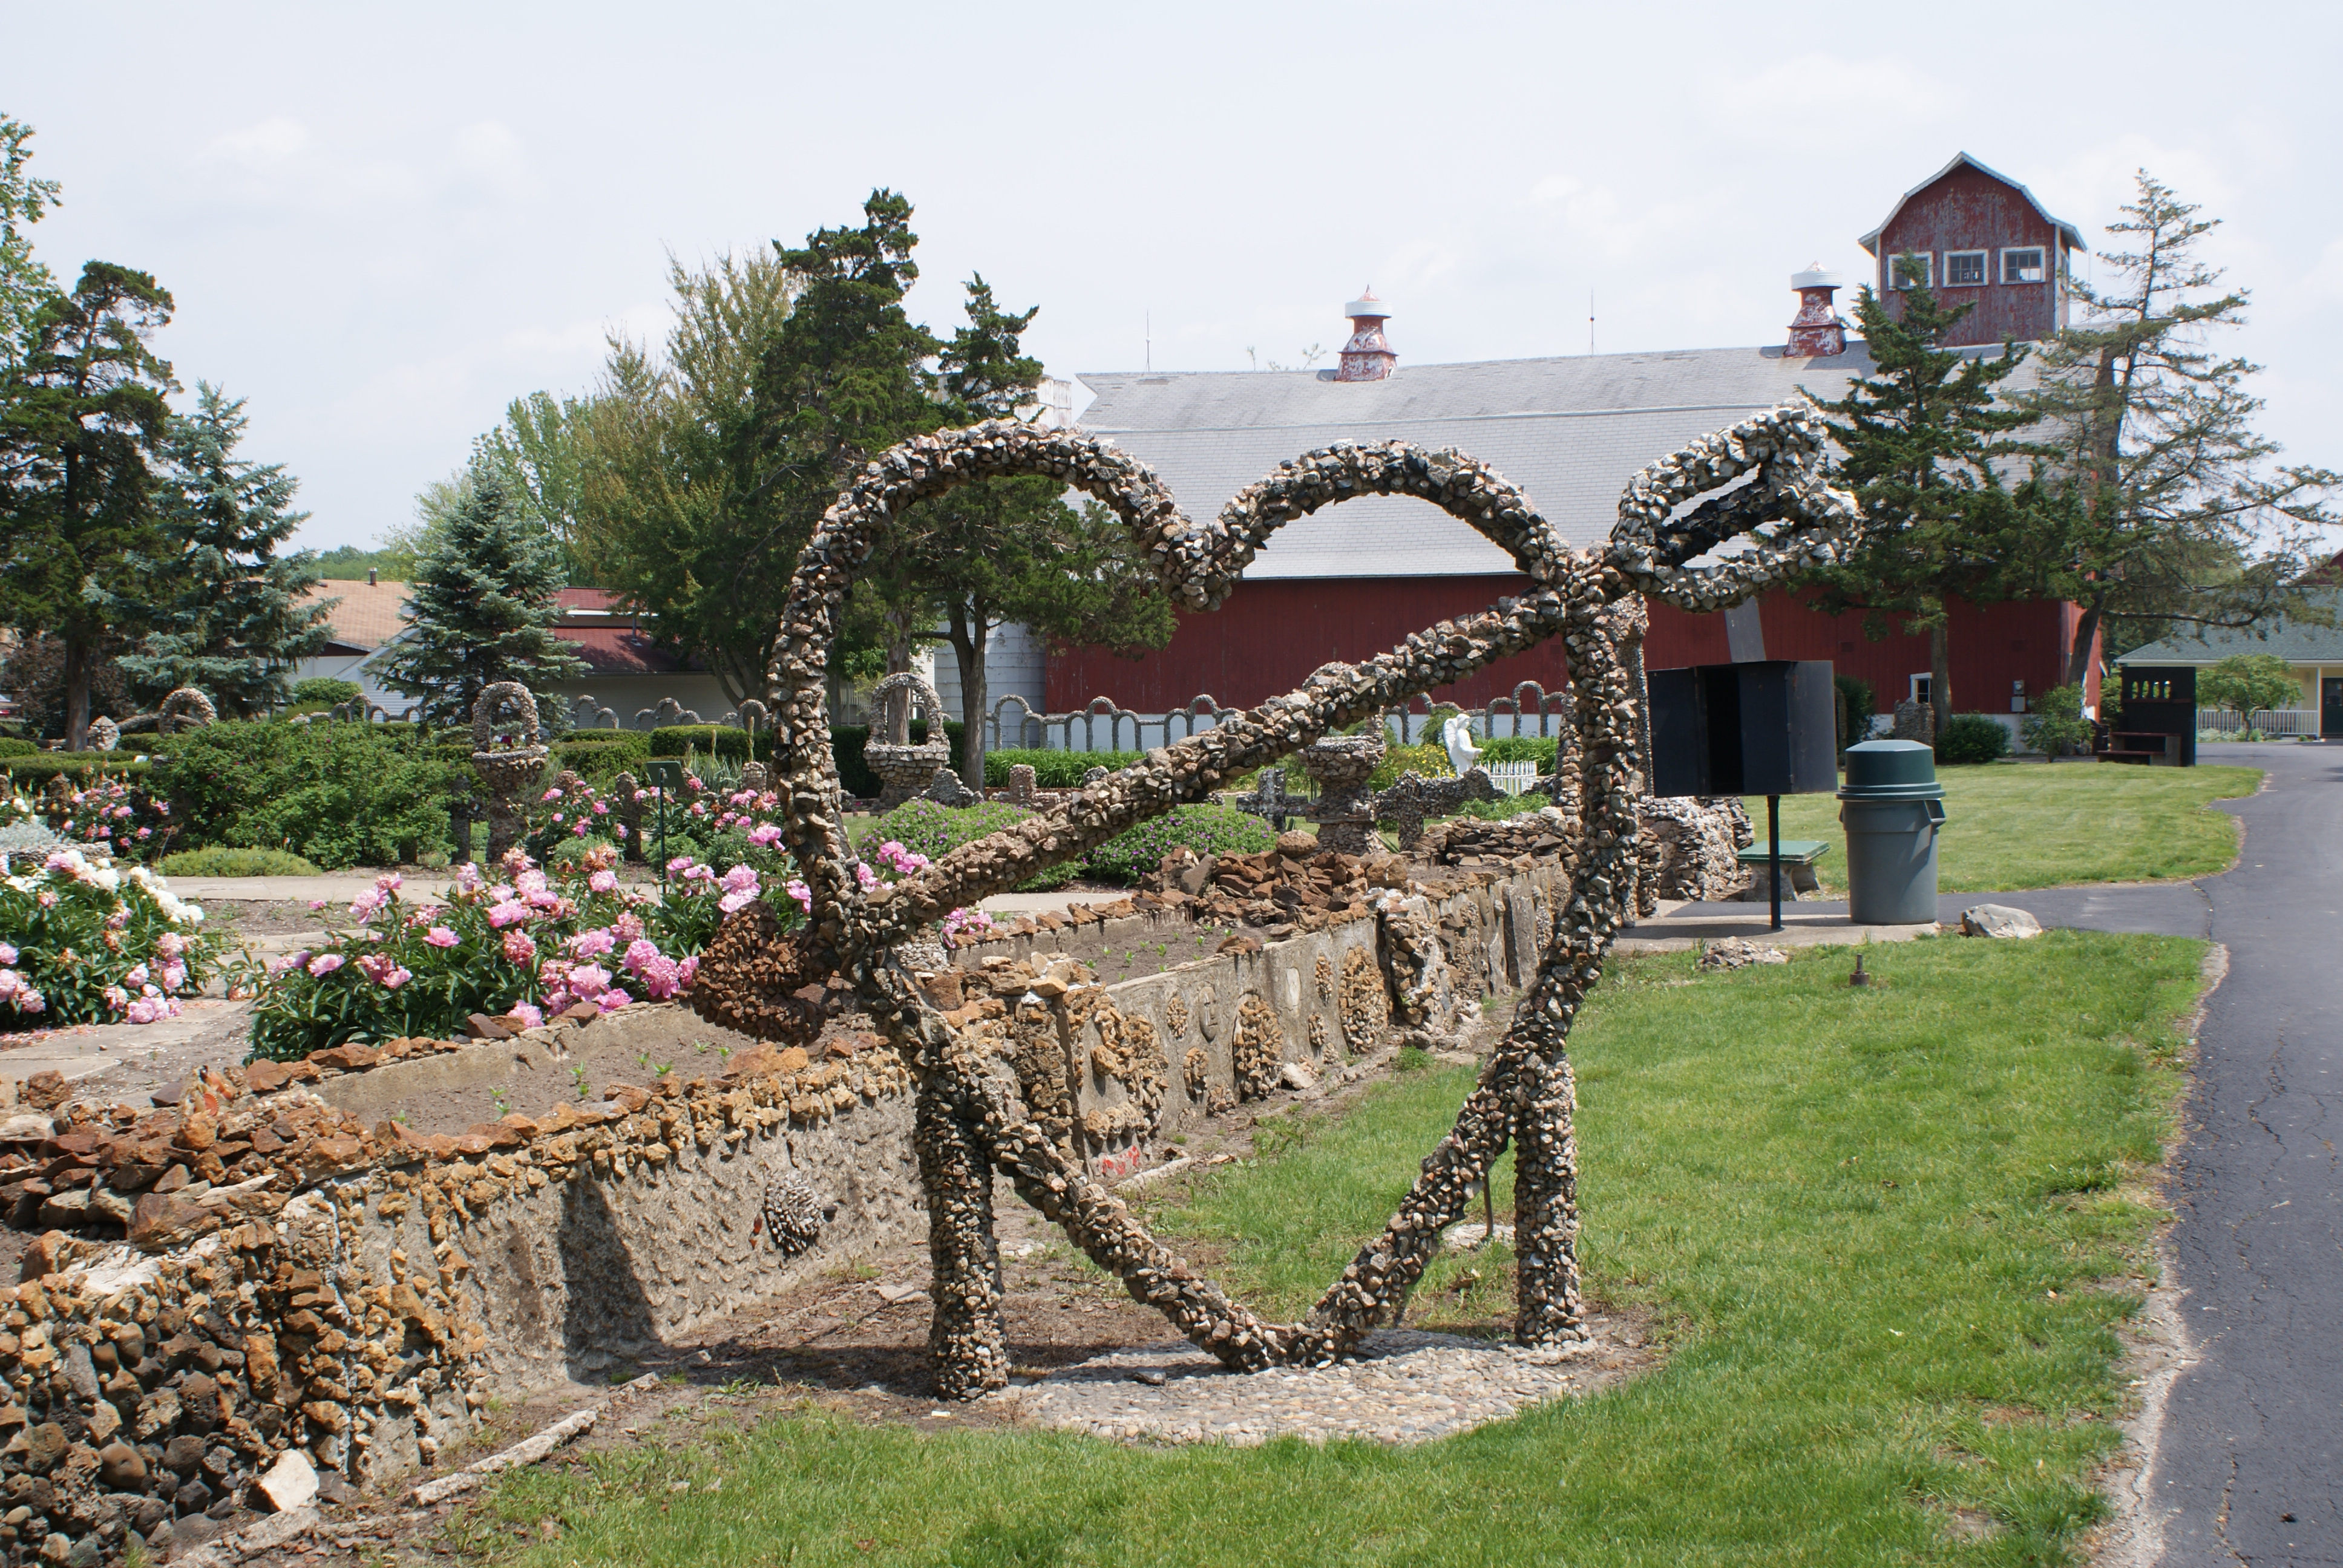 Nice Home 2017 May 7 Rockome Gardens A Place Of Flowers And Stones